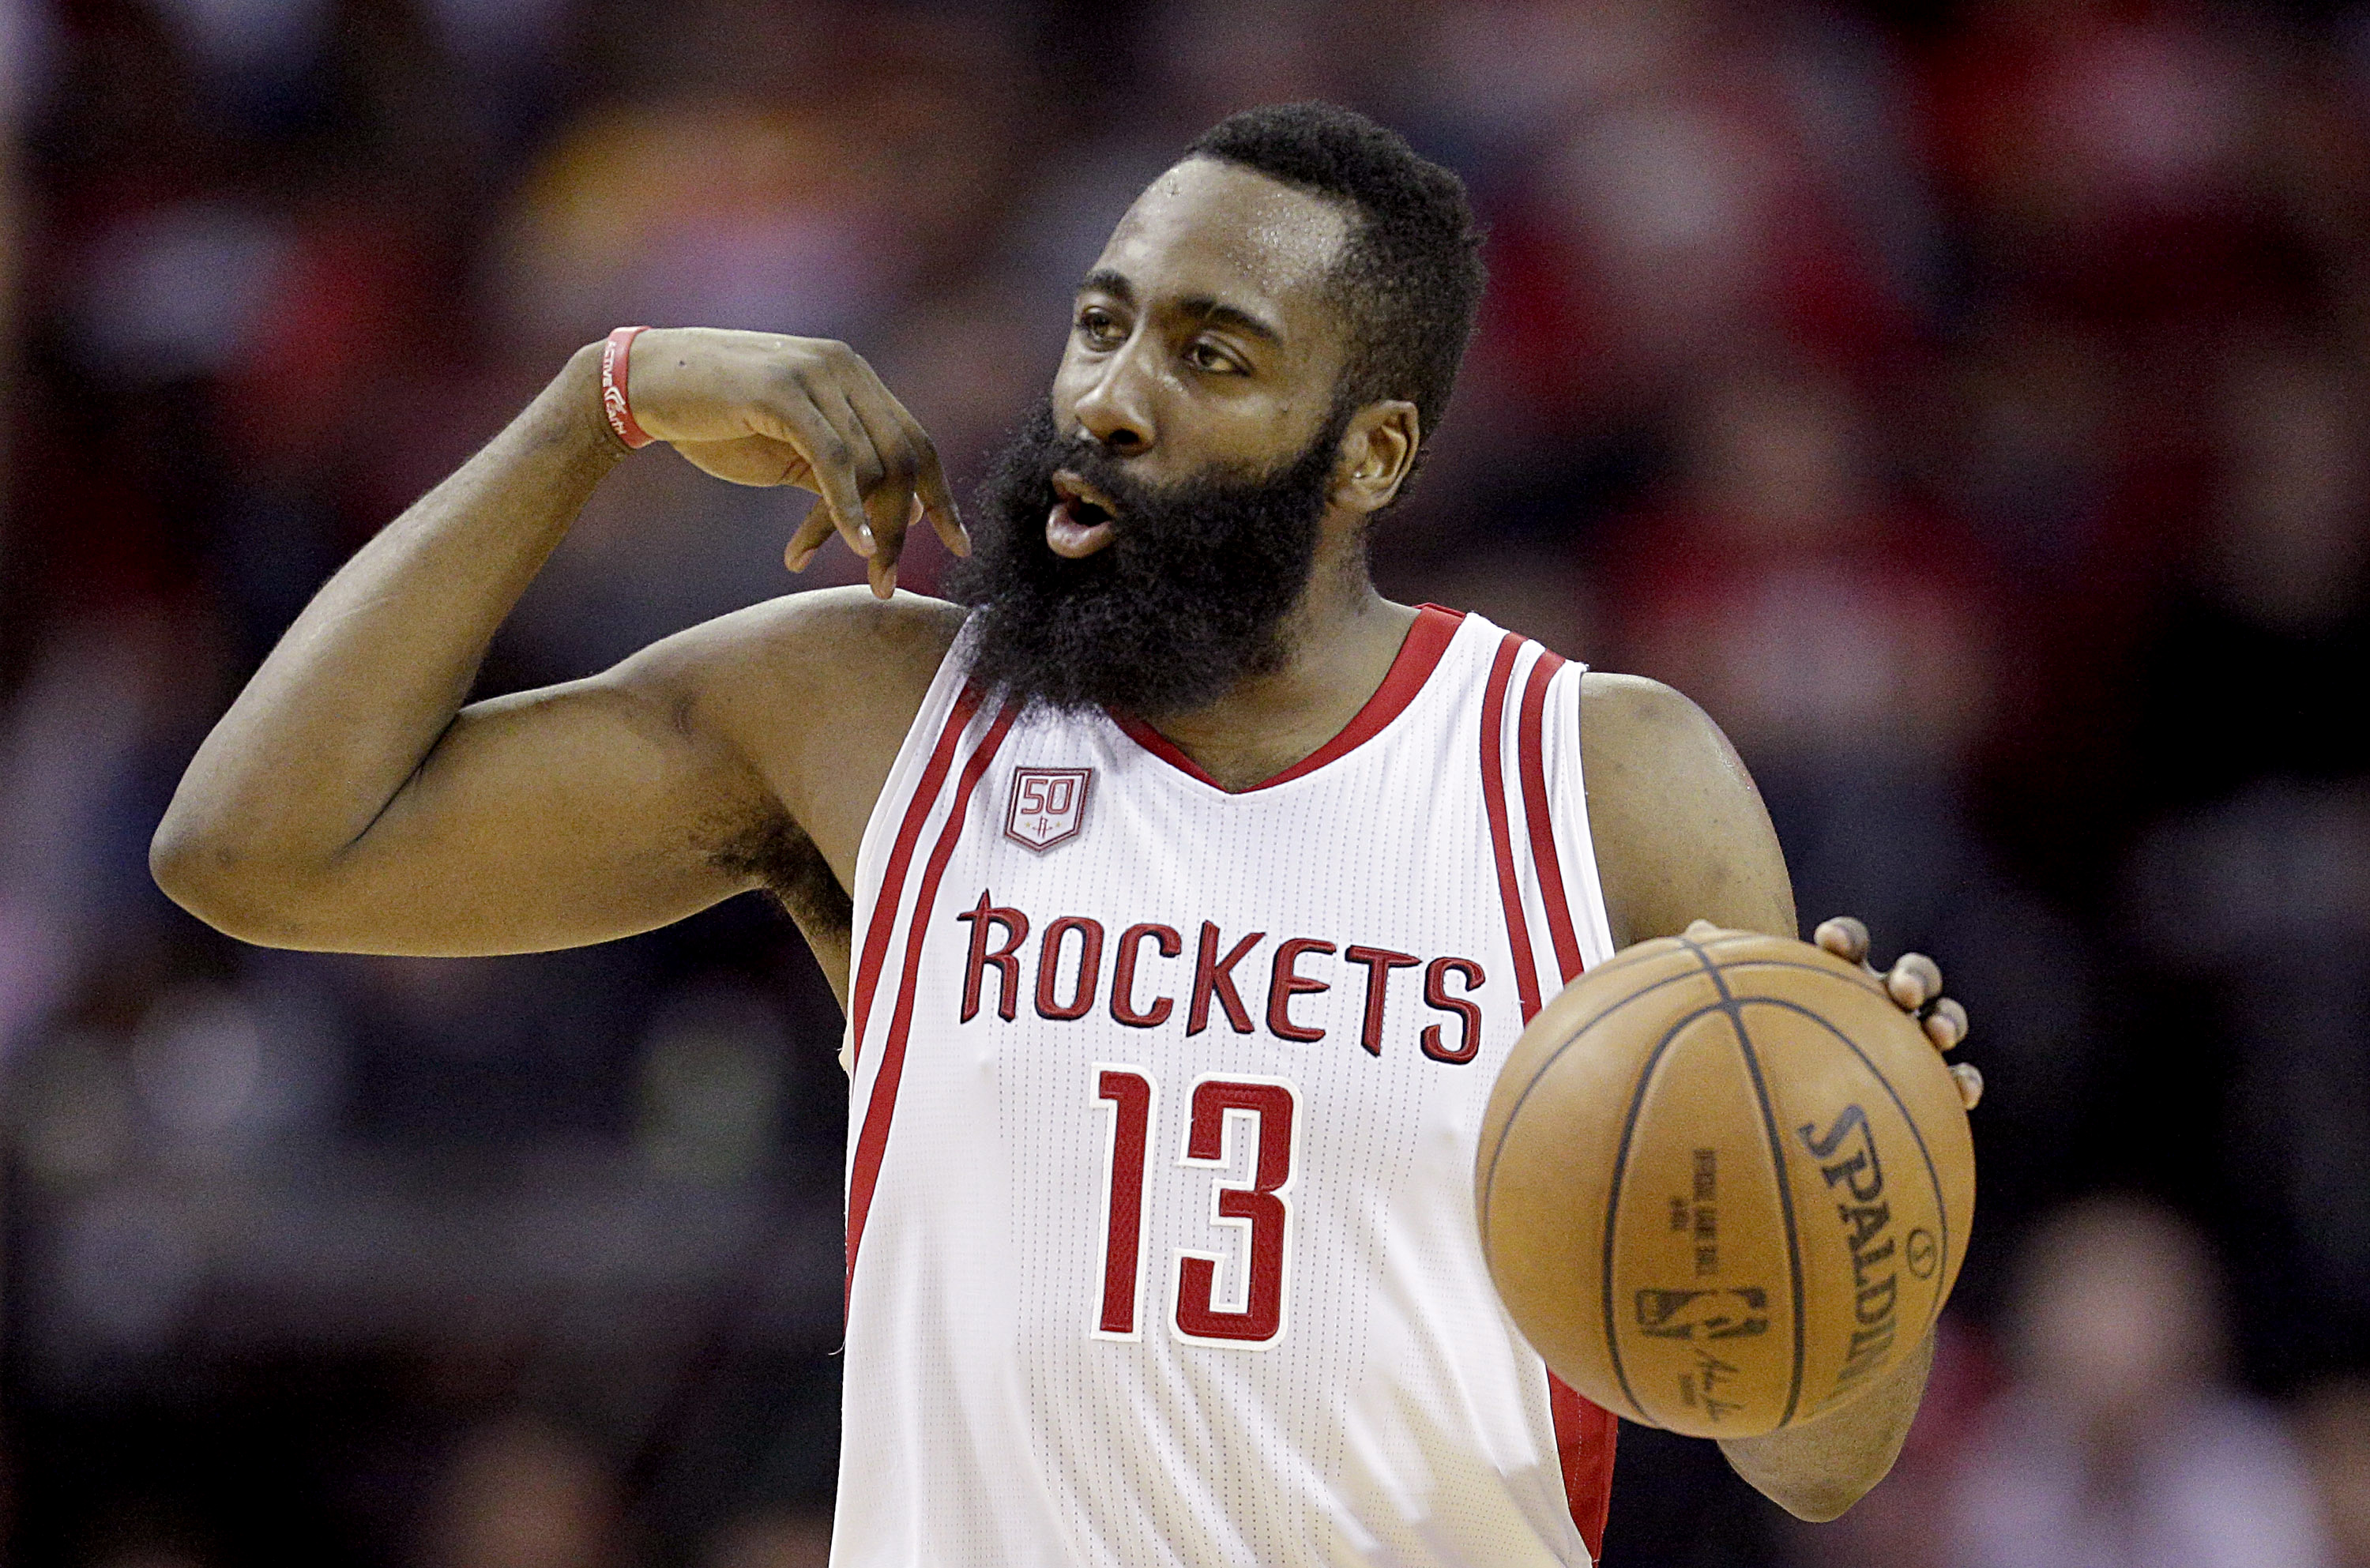 Ho houston rockets nba championship - In Week 22 Of Nba Power Rankings The Houston Rockets Take The No 1 Spot With The Golden State Warriors Hot On Their Heels After A Bounce Back Week